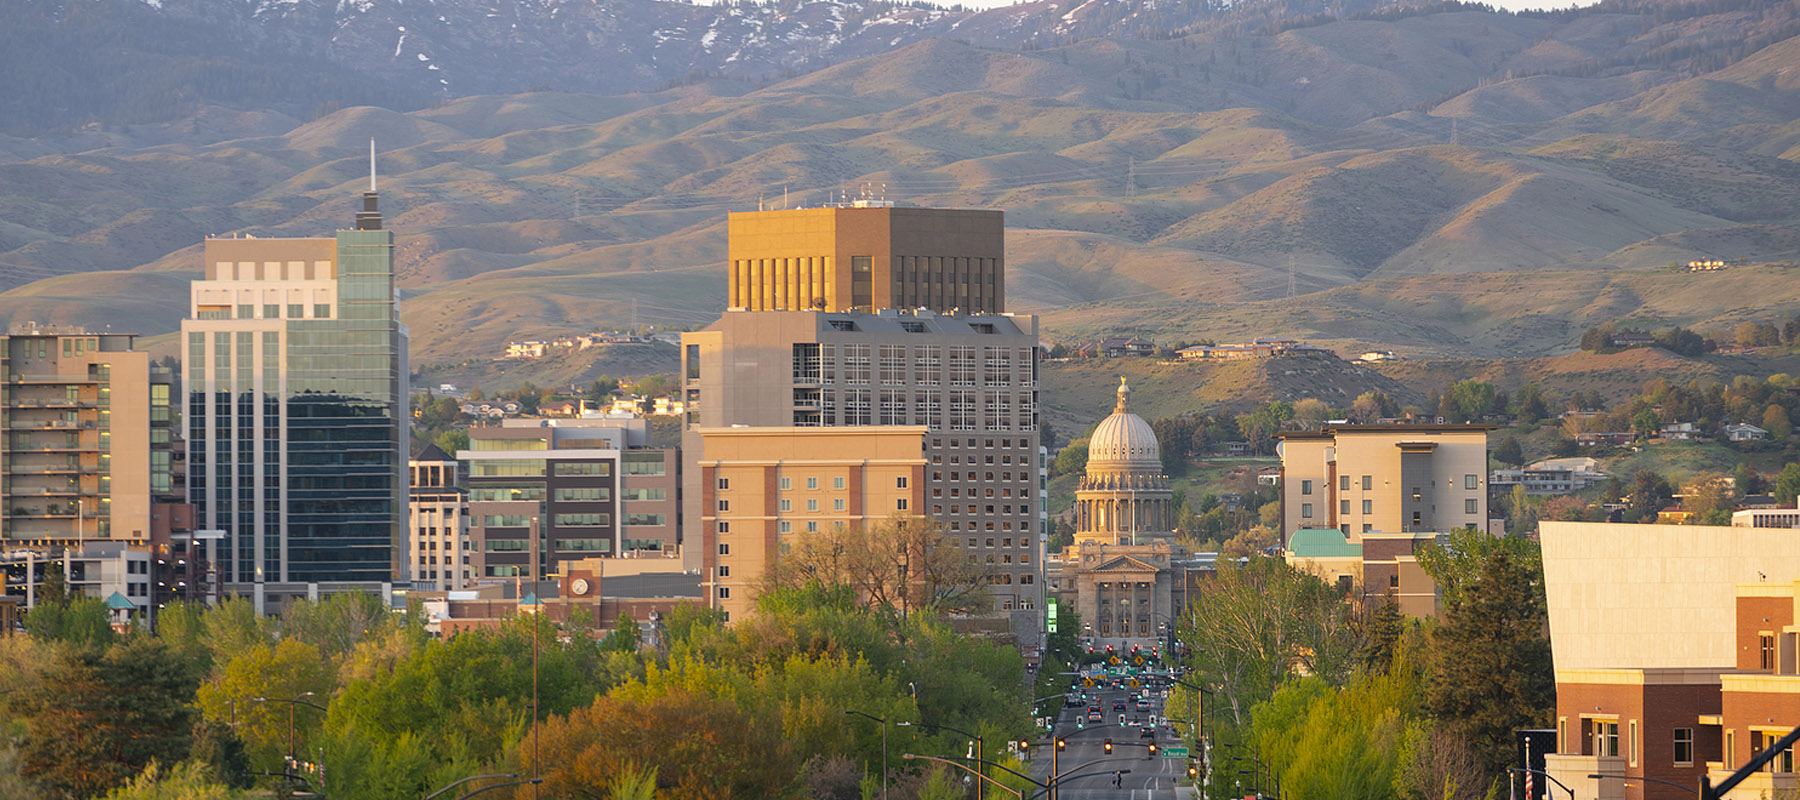 Downtown Boise skyline and foothills at dusk